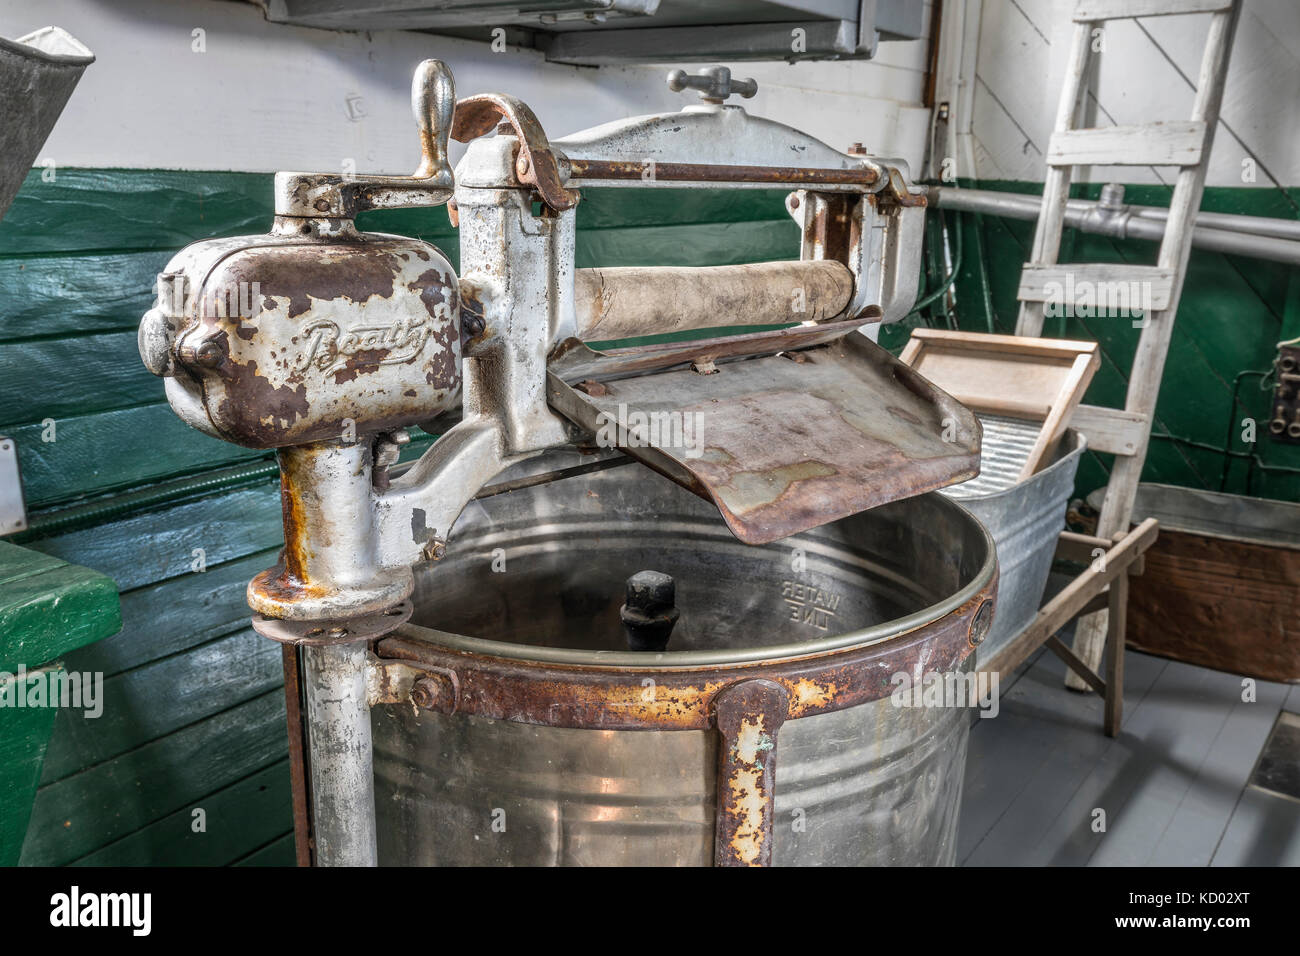 Vintage Beatty washing machine, Marine Museum of Manitoba, Selkirk, Manitoba, Canada. - Stock Image